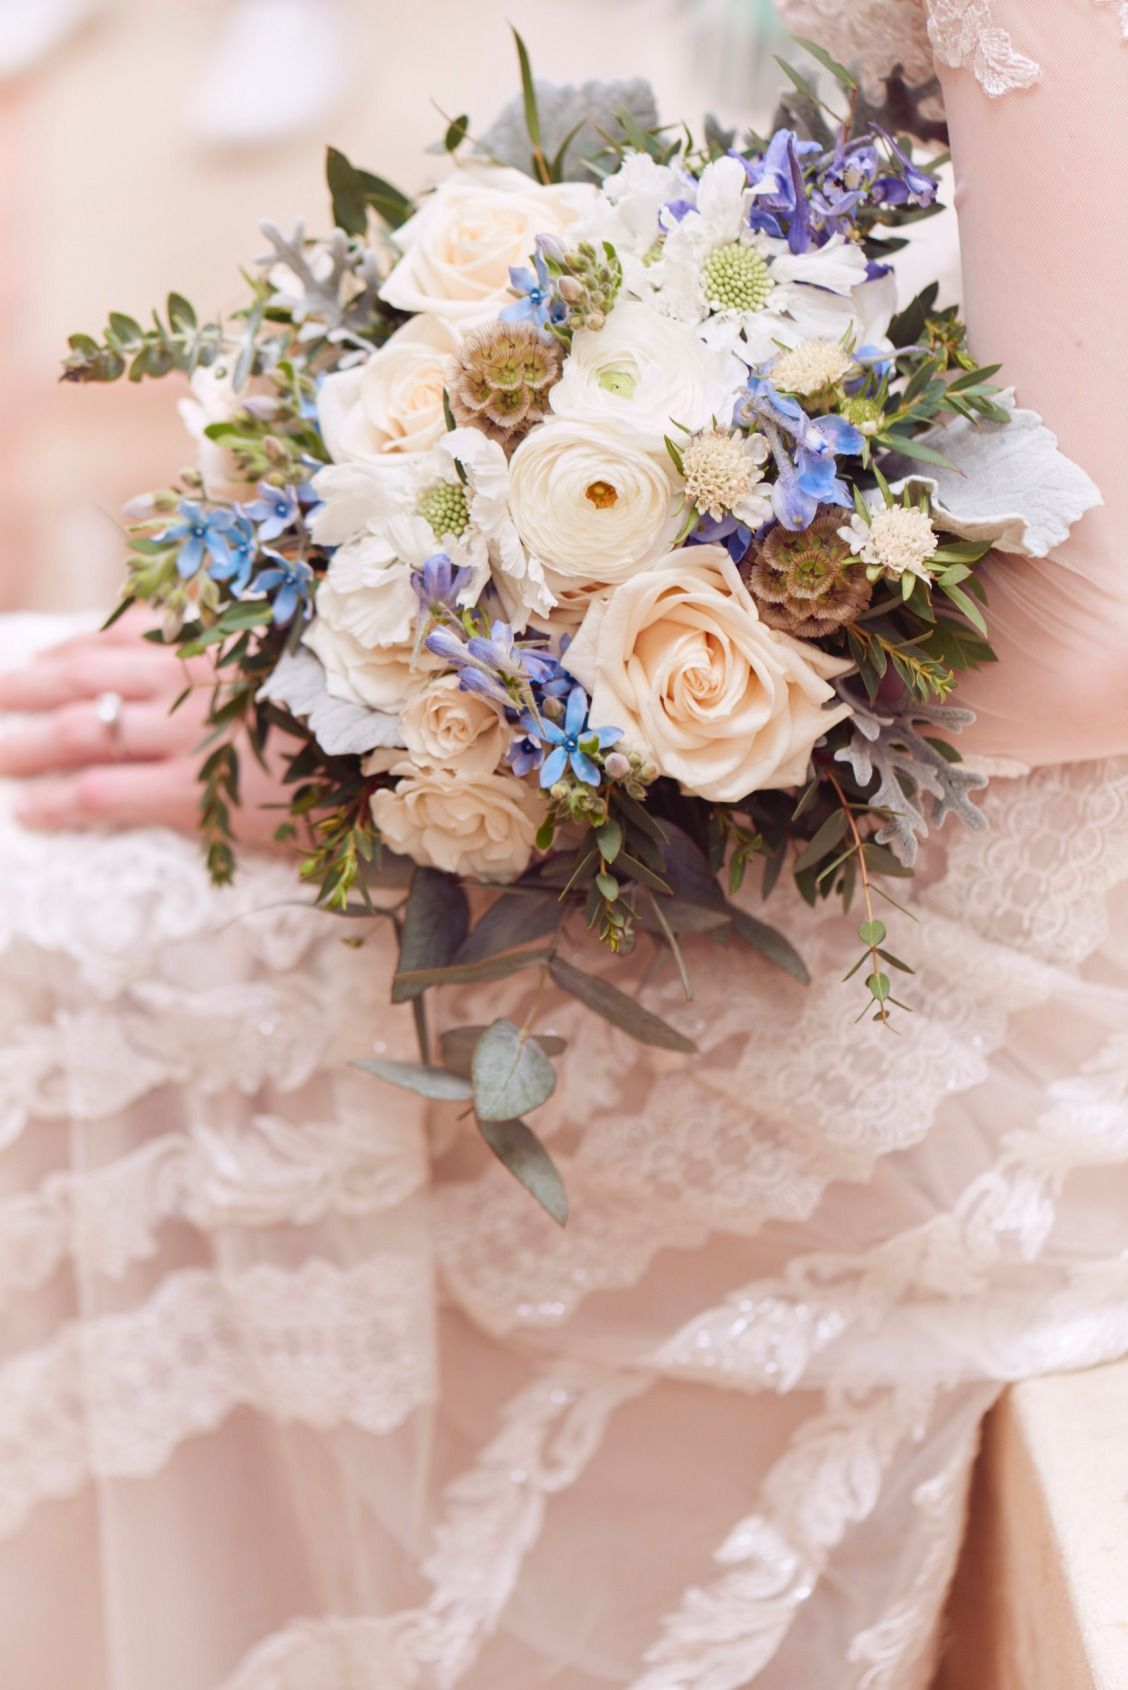 Soft blue and bright white wedding flowers courtesy of our romantic